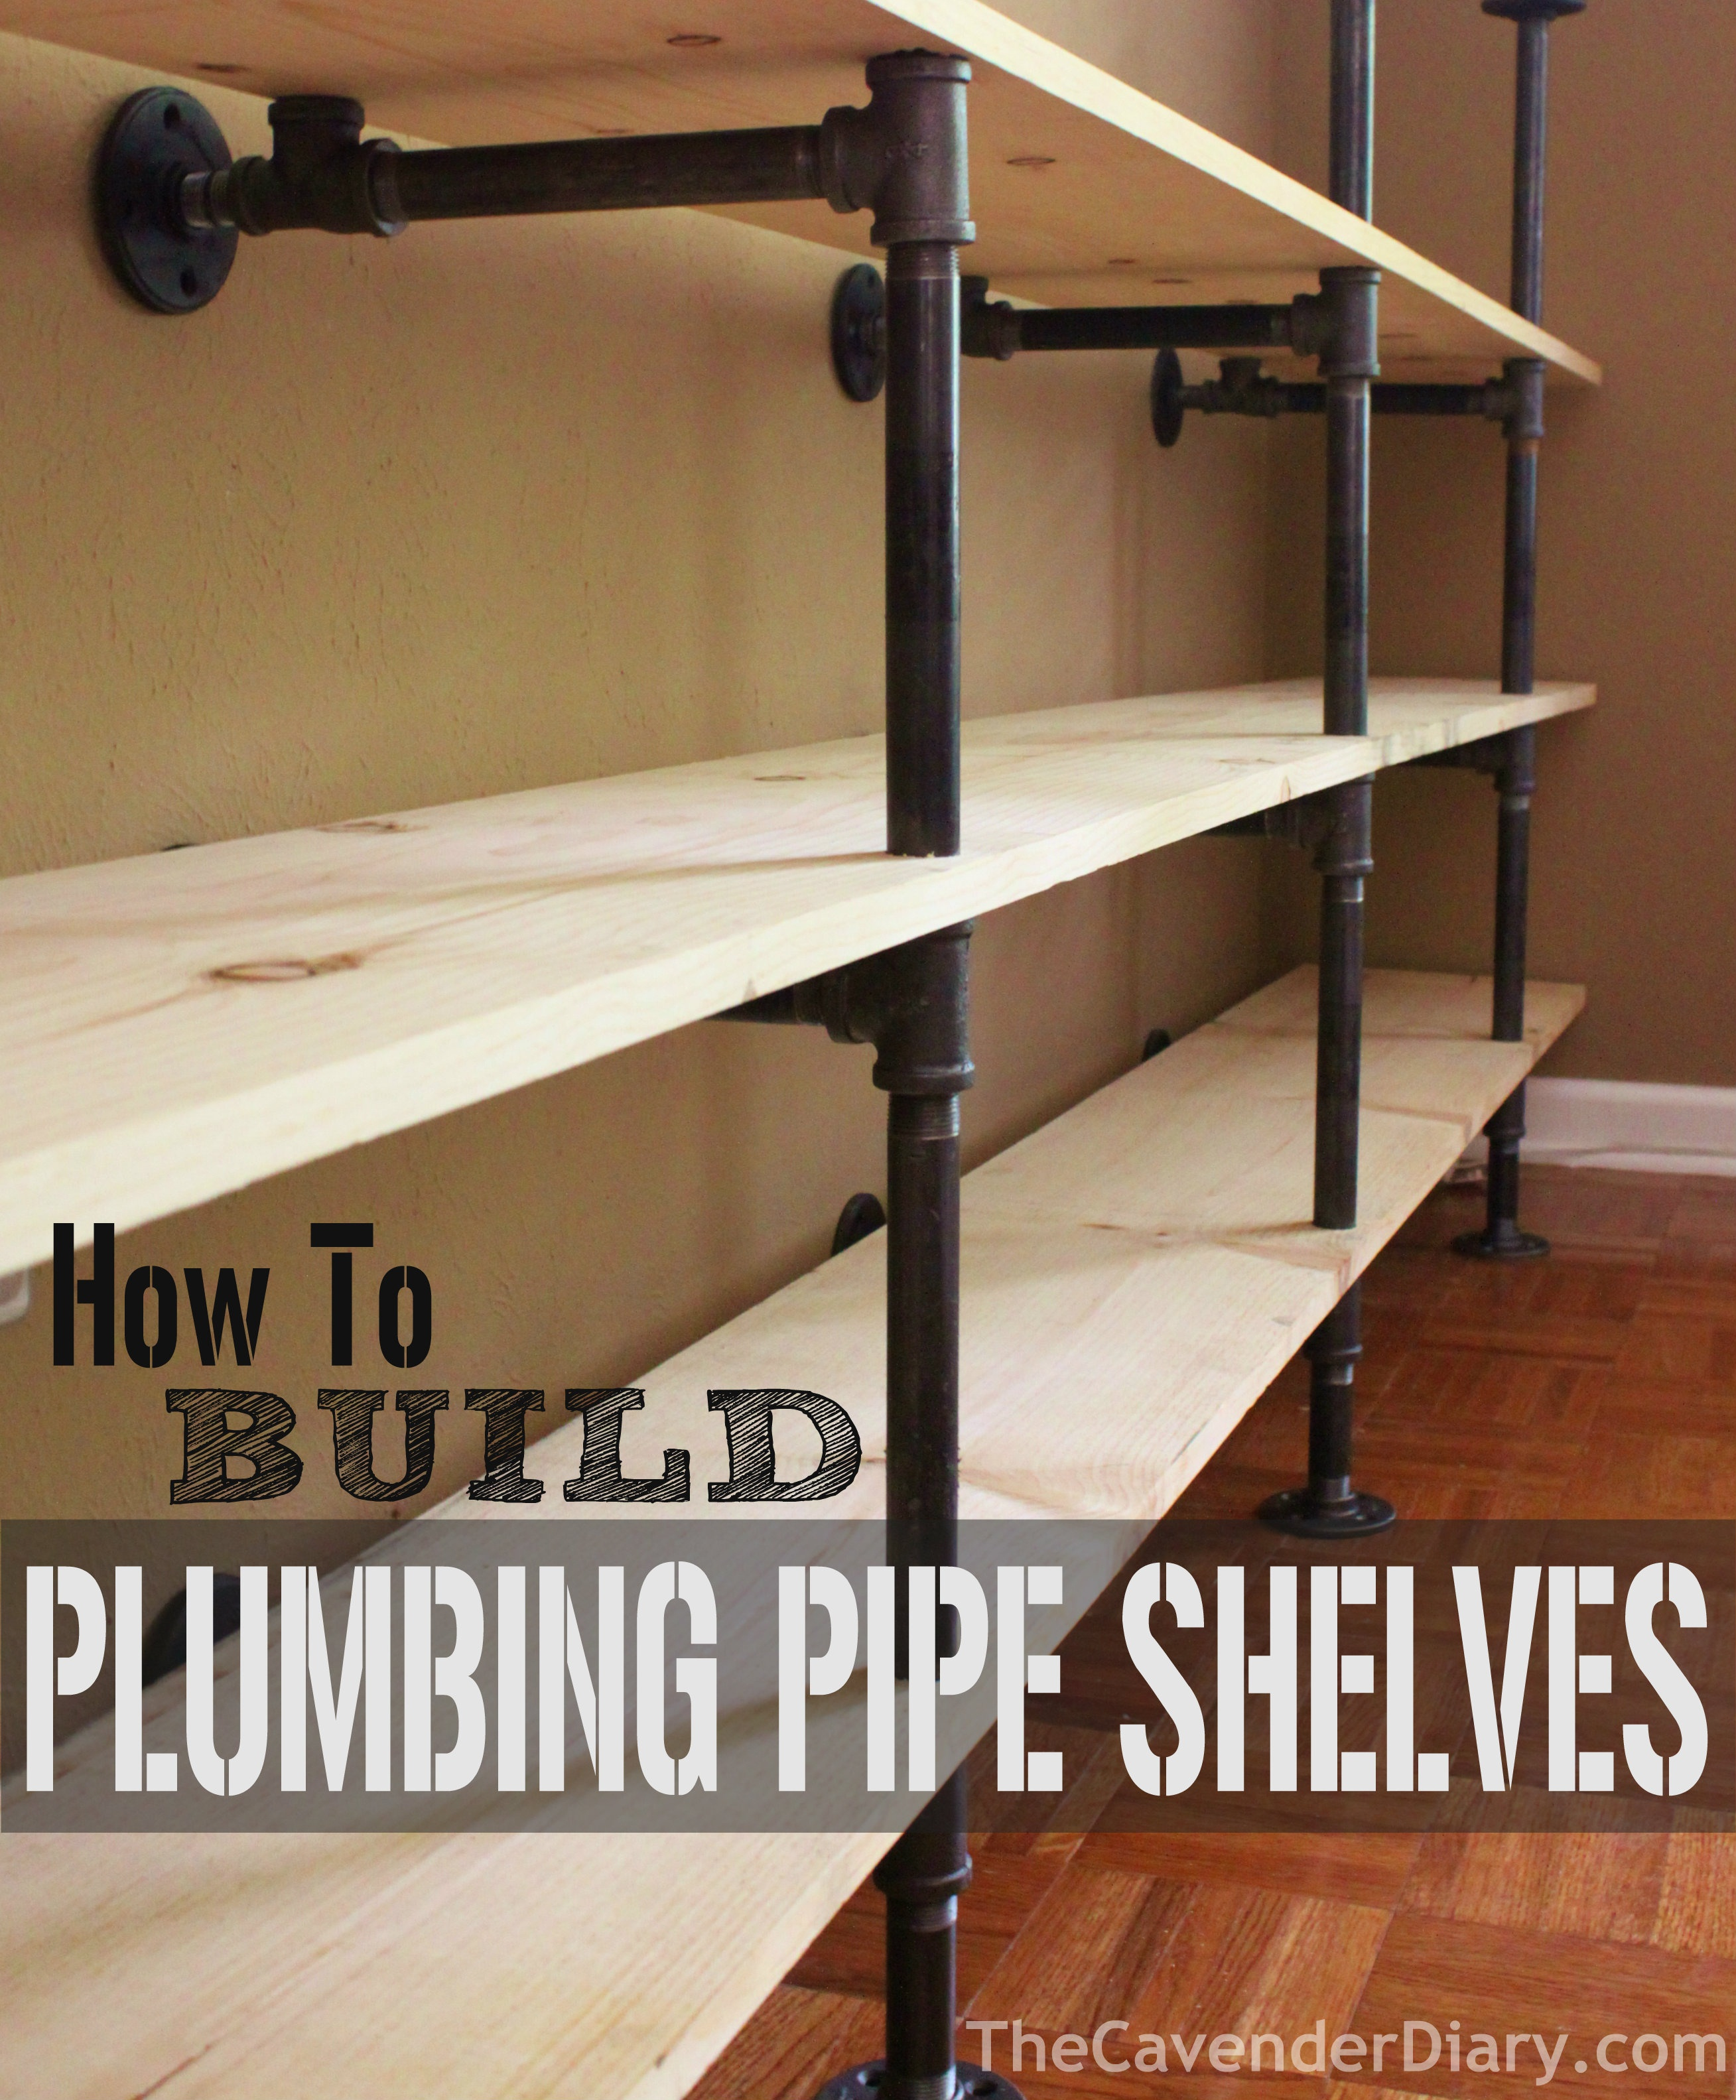 How to Build Plumbing Pipe Shelves from